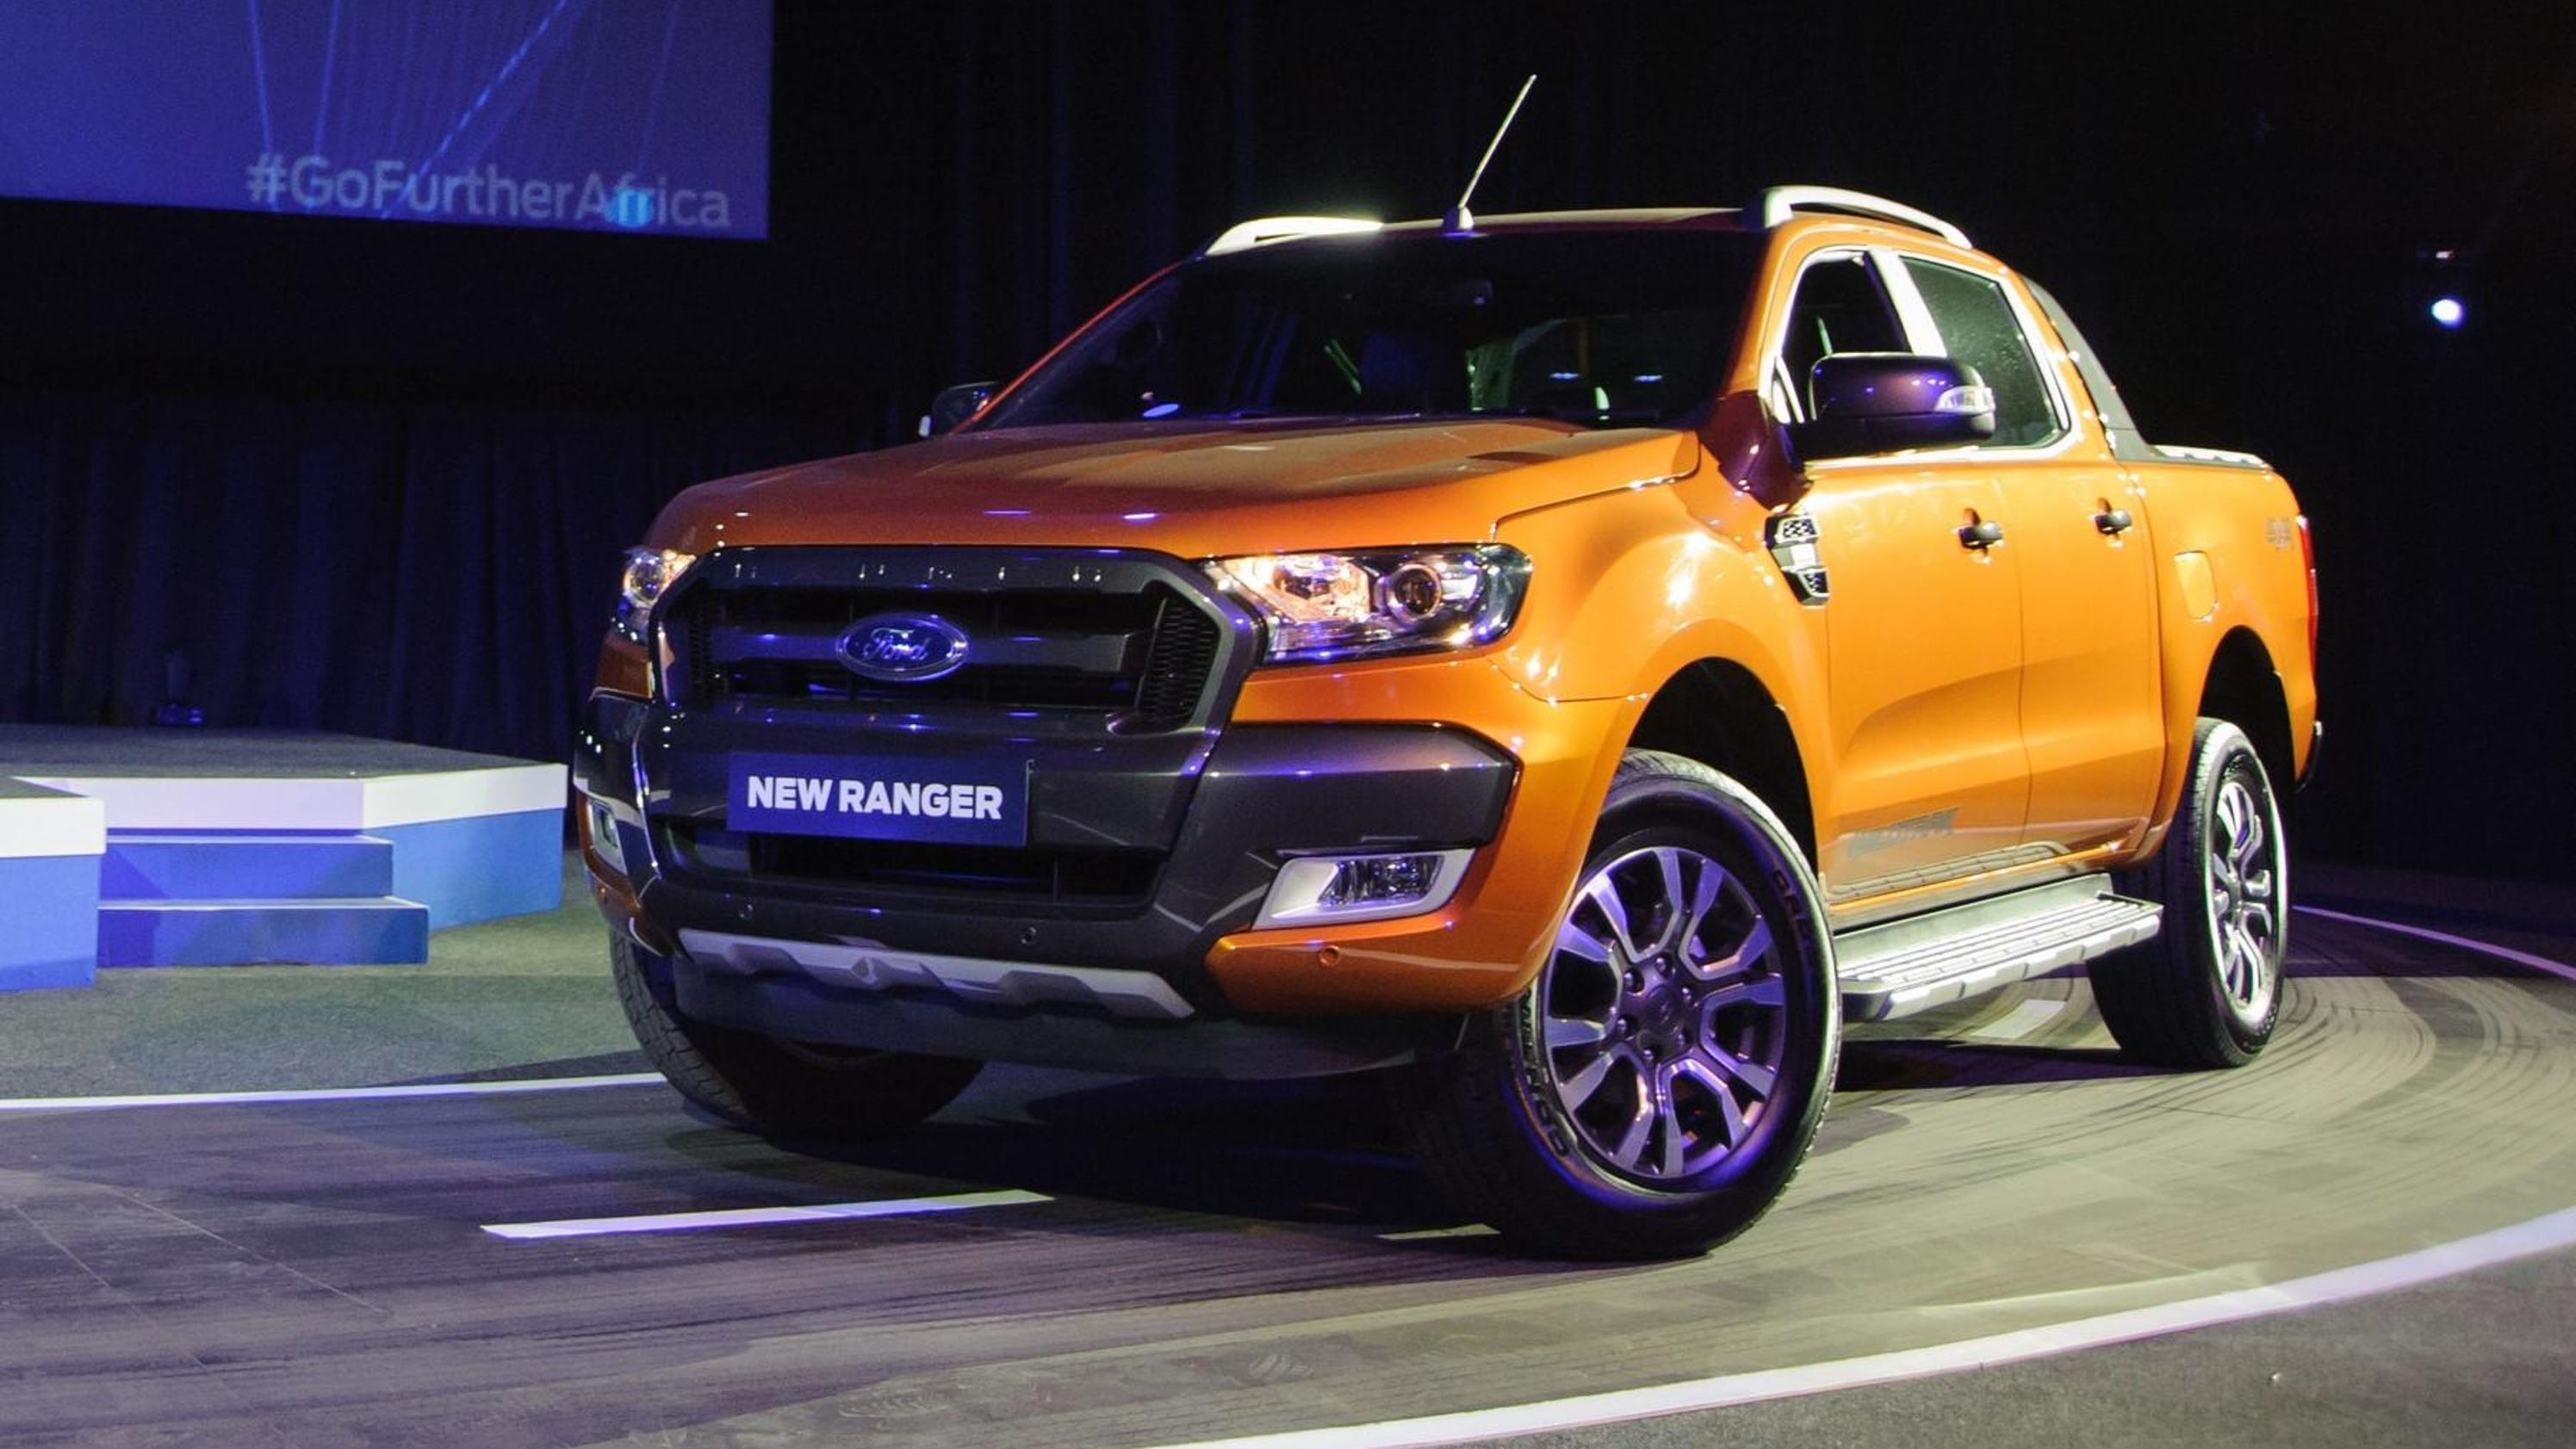 ford plans to build ranger at michigan assembly. Black Bedroom Furniture Sets. Home Design Ideas